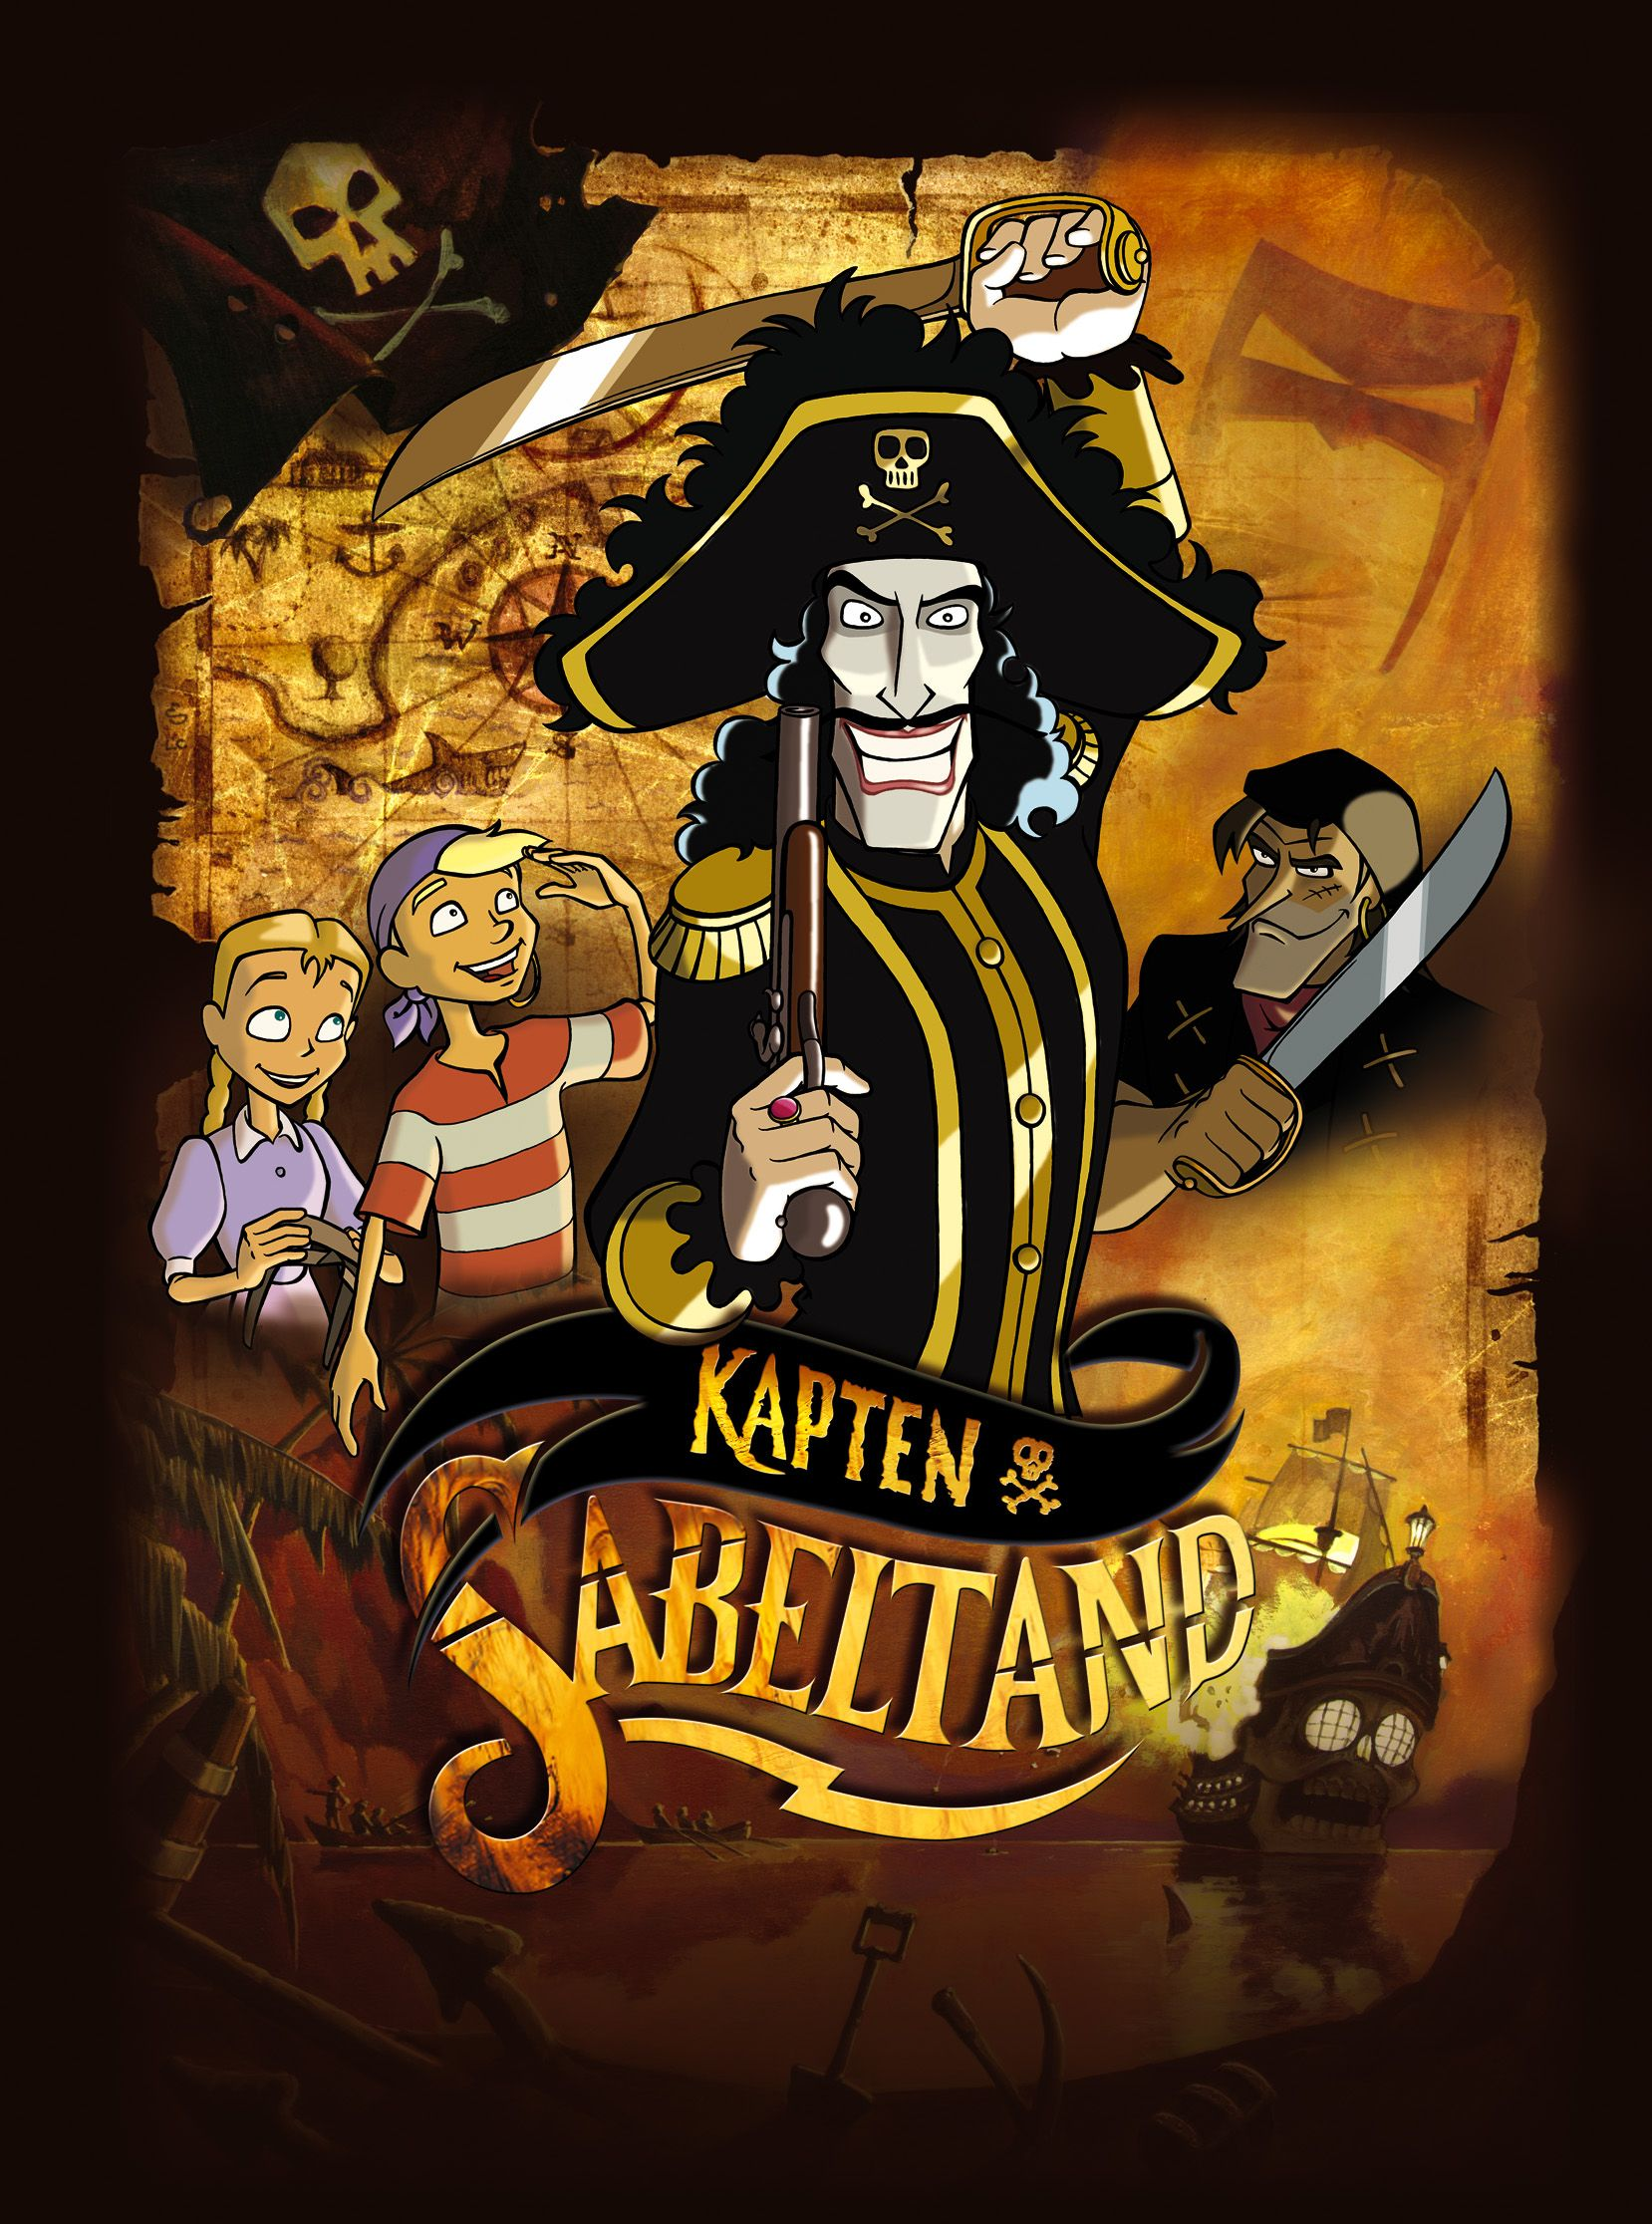 Captain Sabertooth | Pirate images, Sabertooth, Full ...